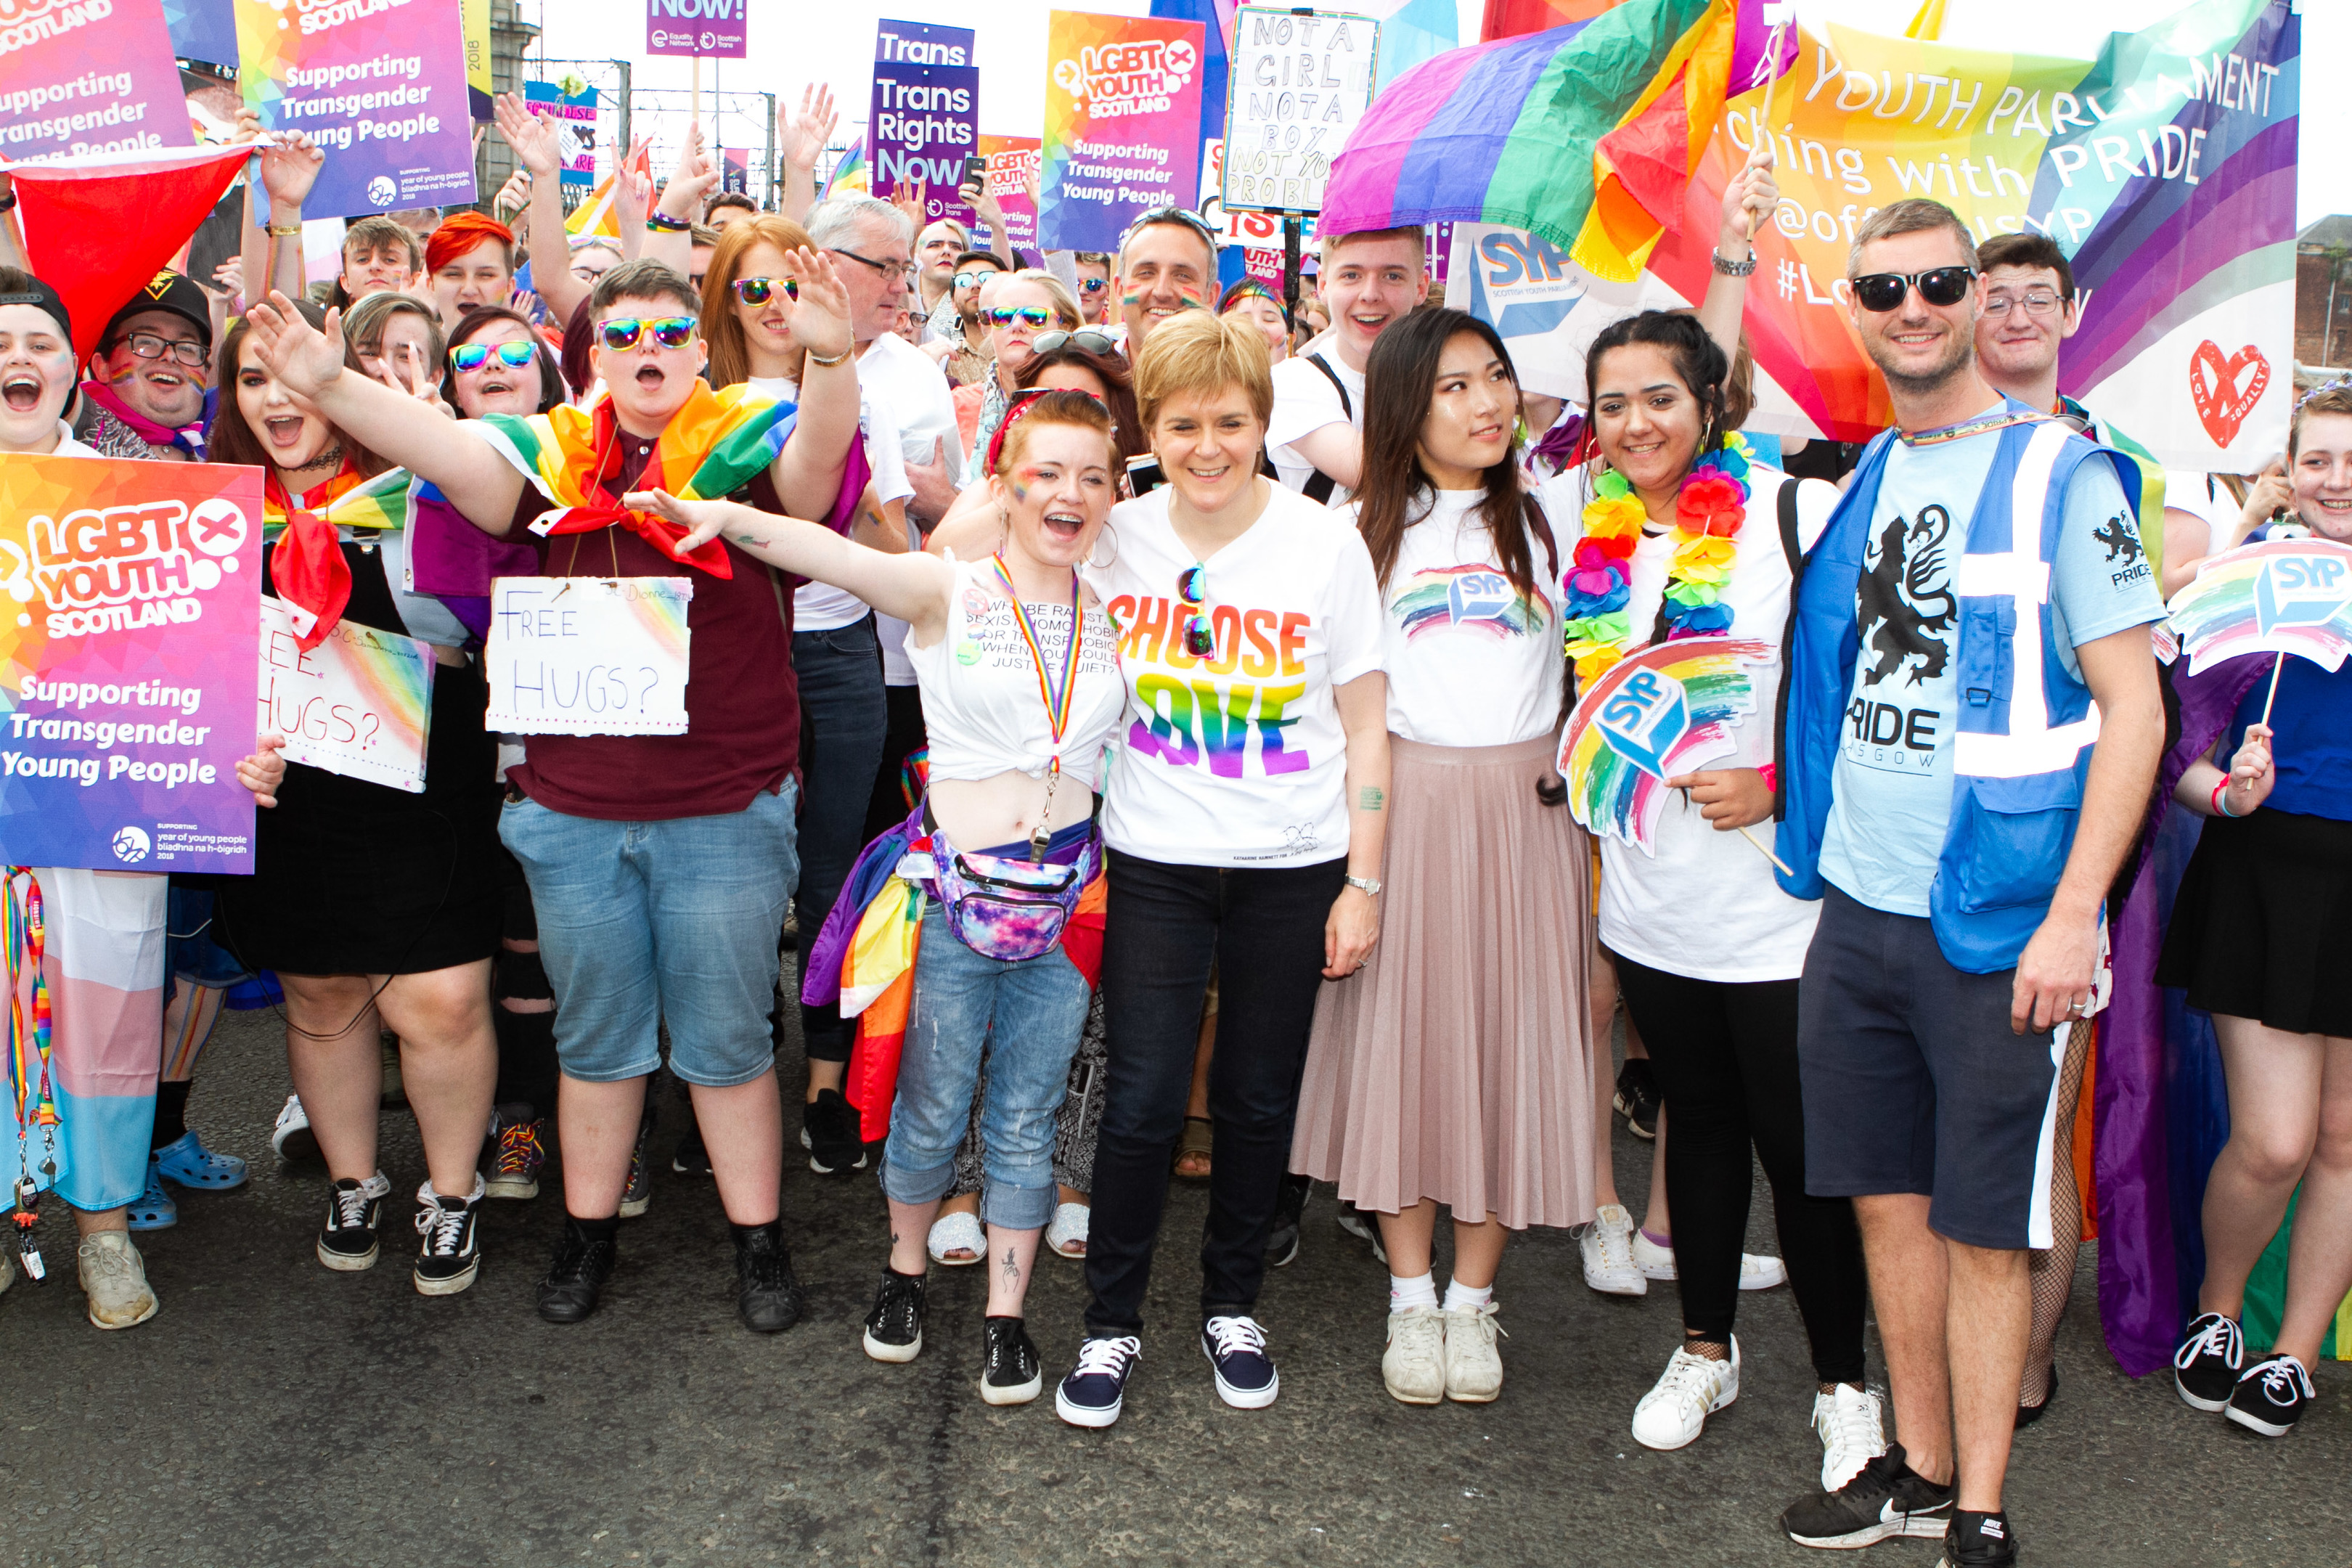 Nicola Sturgeon leads the Pride parade (Chris Austin / DC Thomson)